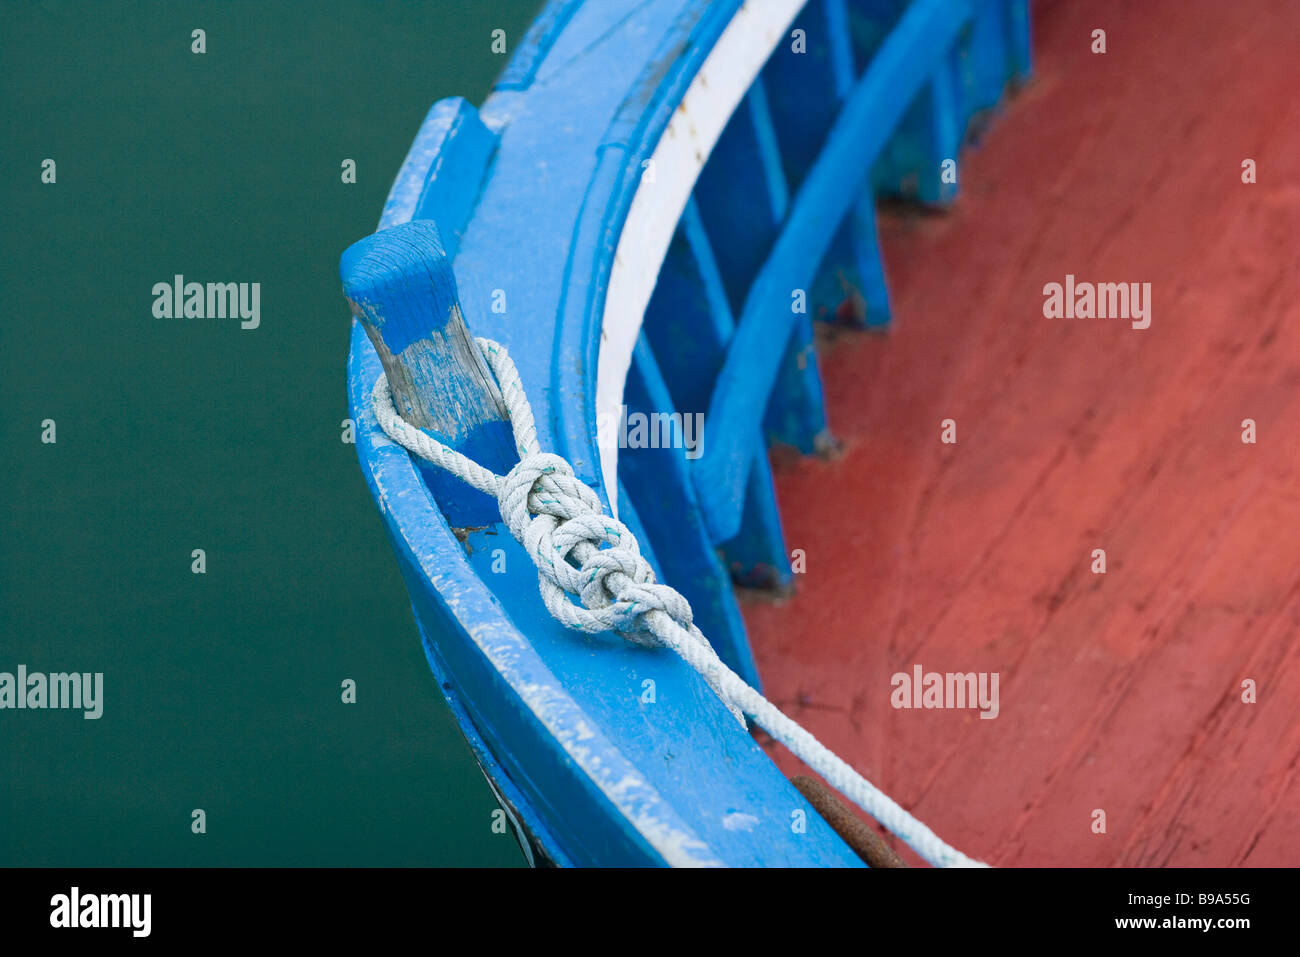 Boat moorings, close-up - Stock Image